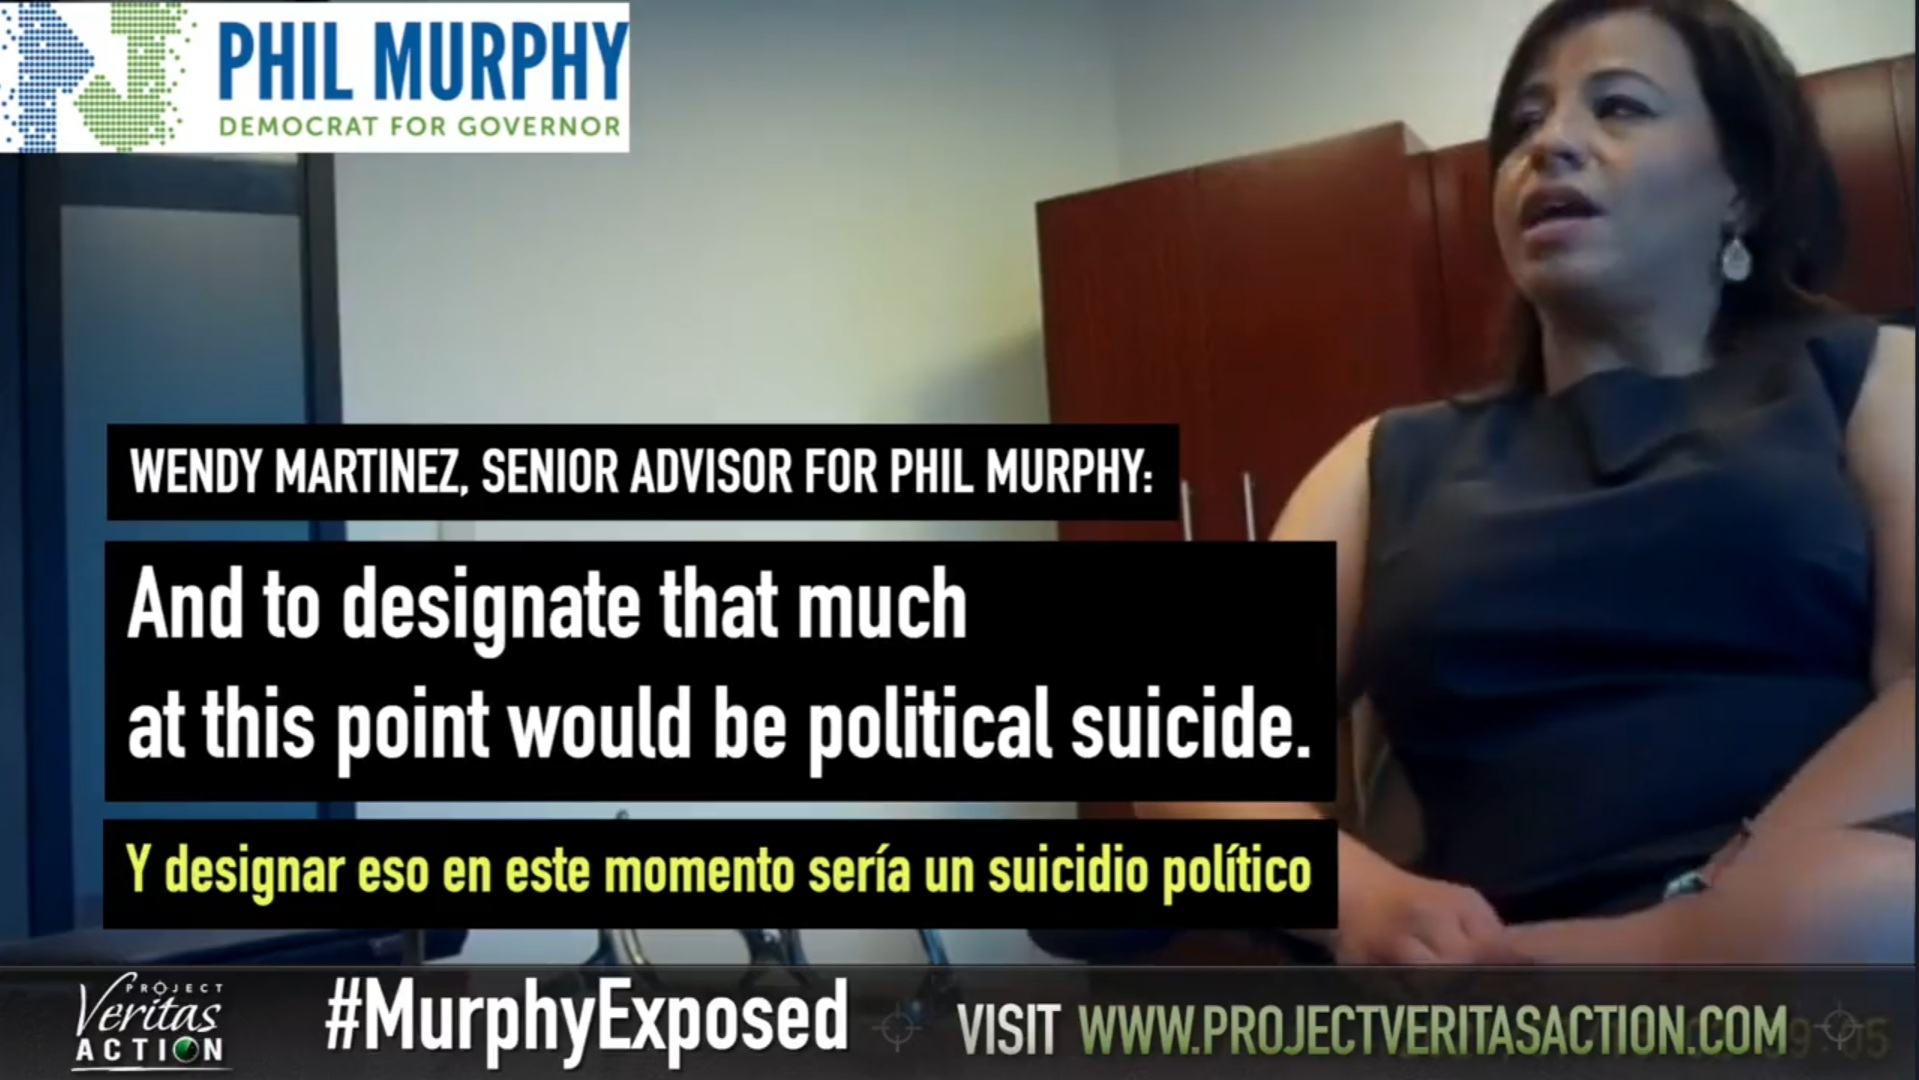 """WATCH: Project Veritas Part II: Sr. Advisor Reveals NJ Governor Murphy Secretly Funneled $40 Million In Taxpayer Funds To Illegals and Plans to Give Millions More – Says Truth Would Be Like """"Political Suicide"""" For His Re-Election"""